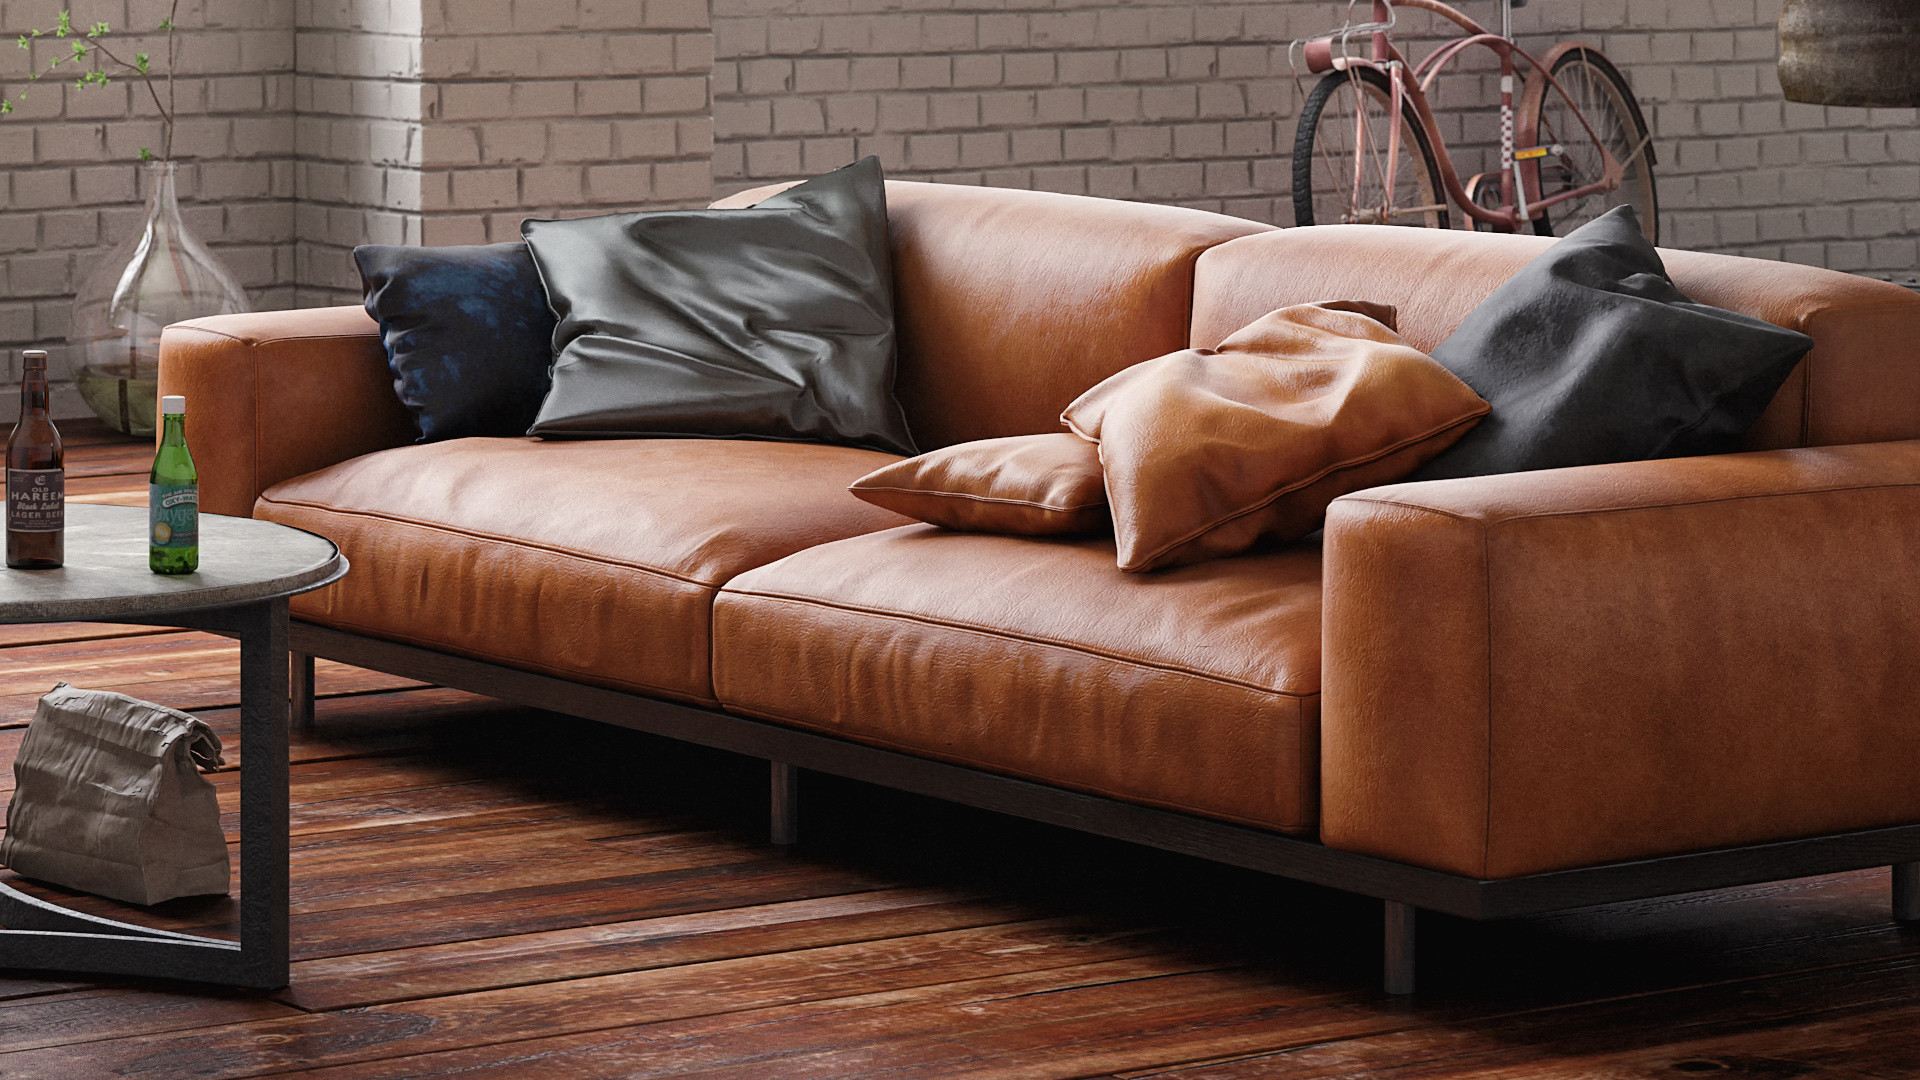 detail_COUCH.jpg